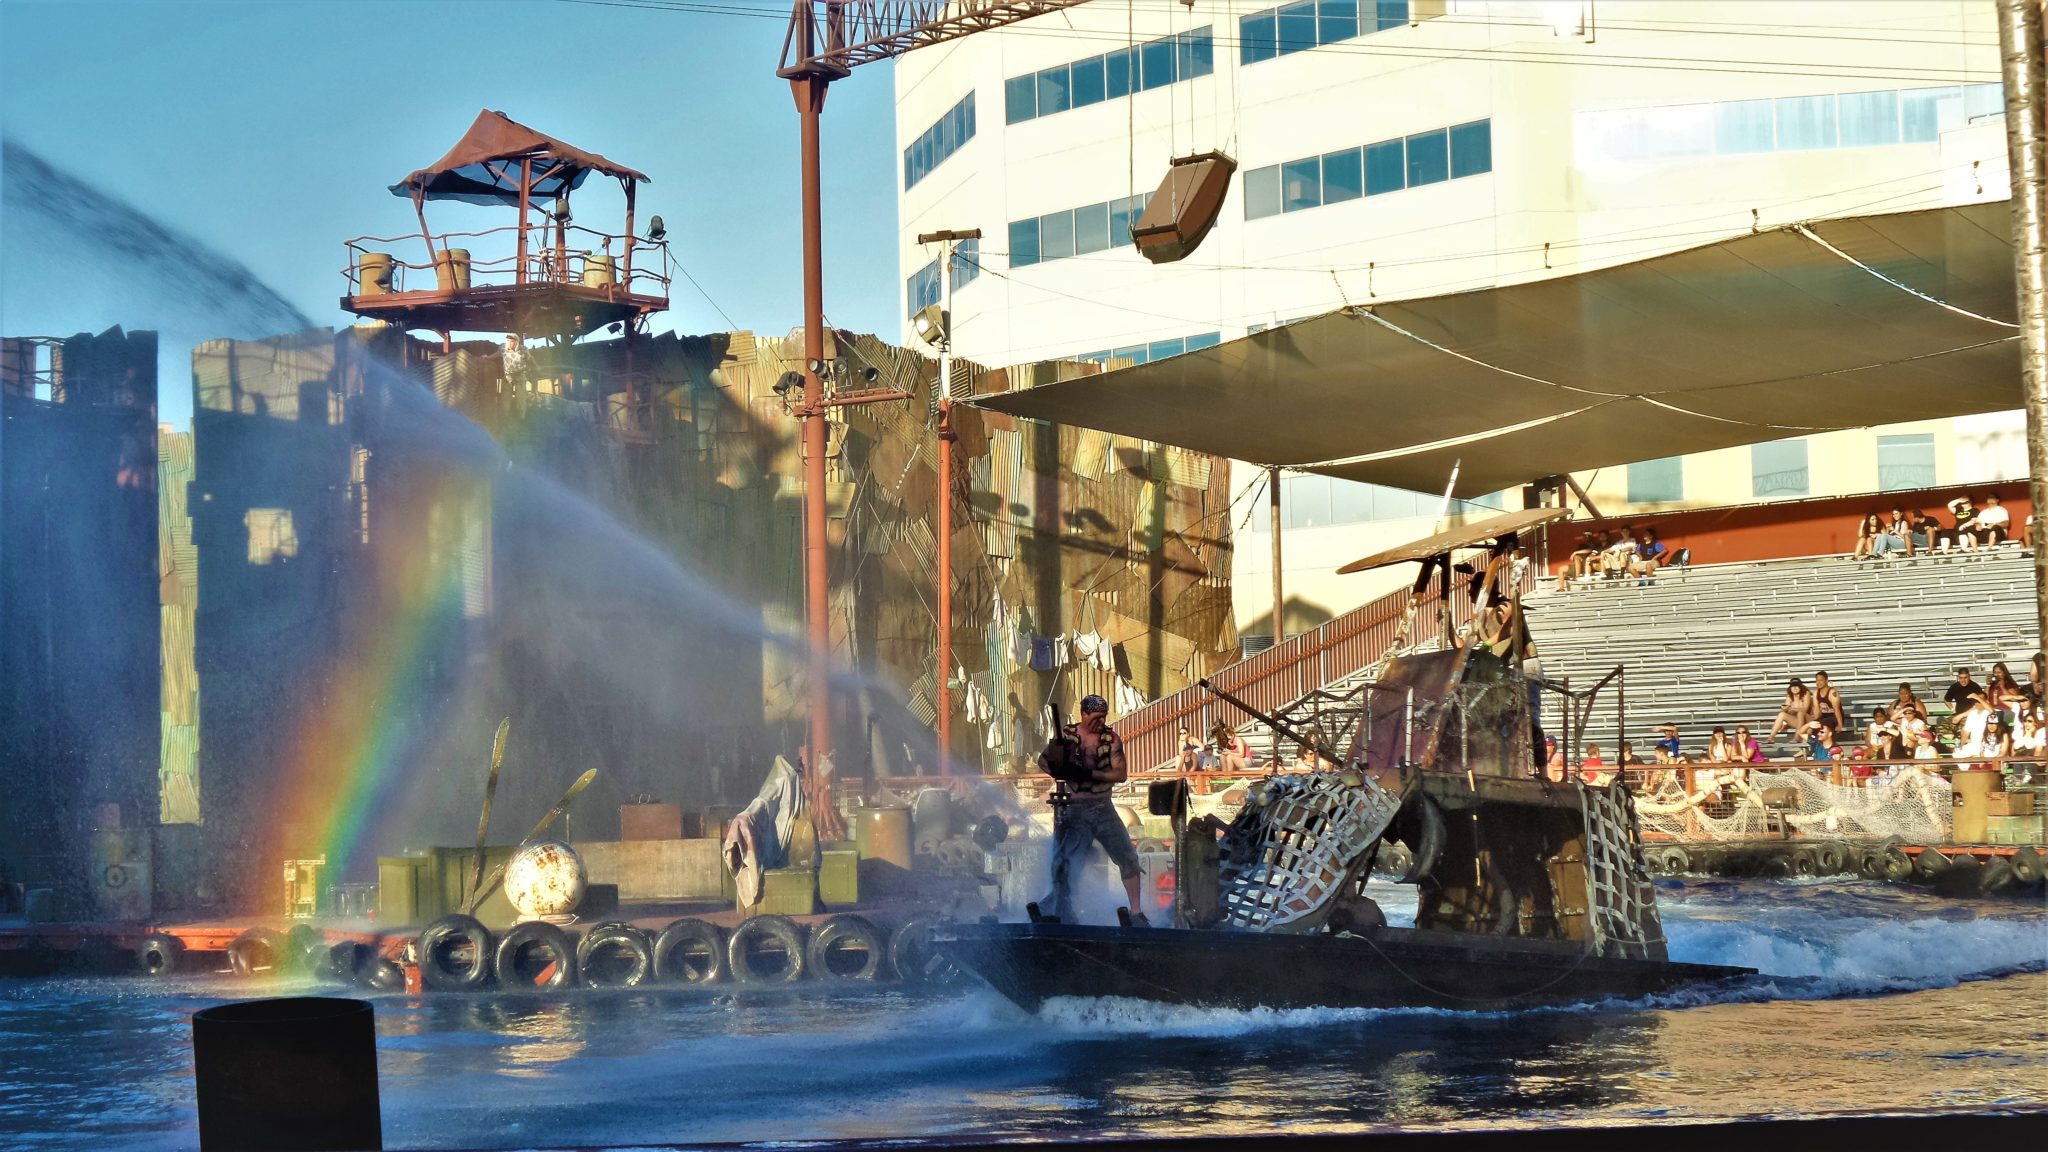 Waterworld show, Universal Studios Hollywood